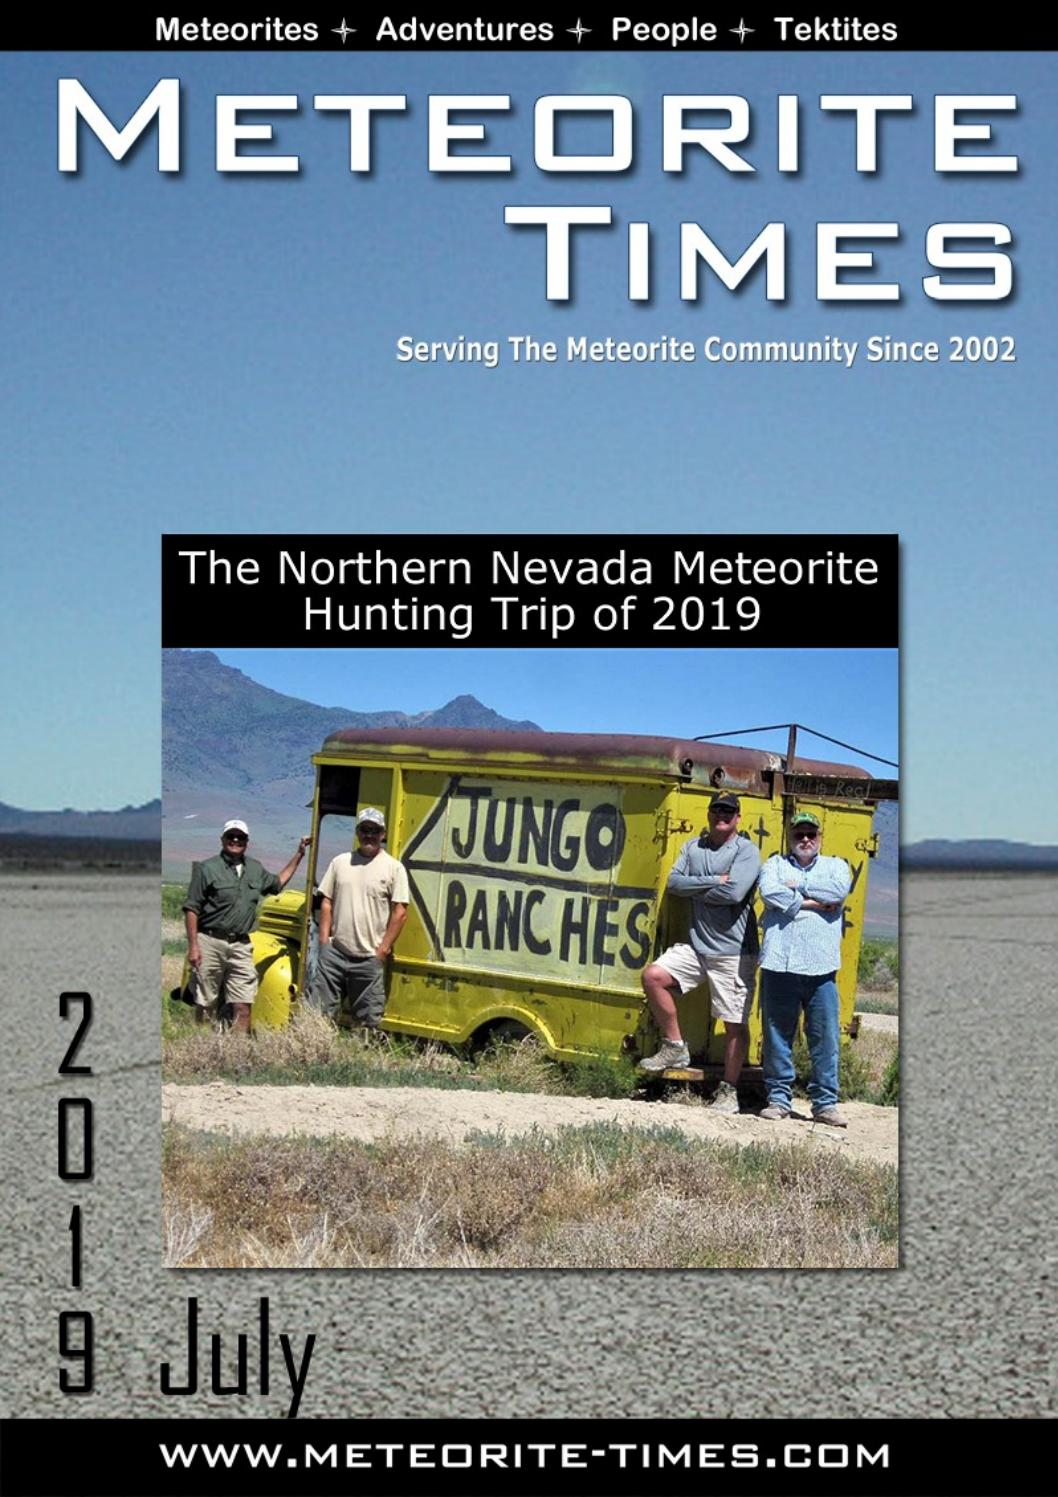 Meteorite Times Magazine by The Meteorite Exchange, Inc  - issuu